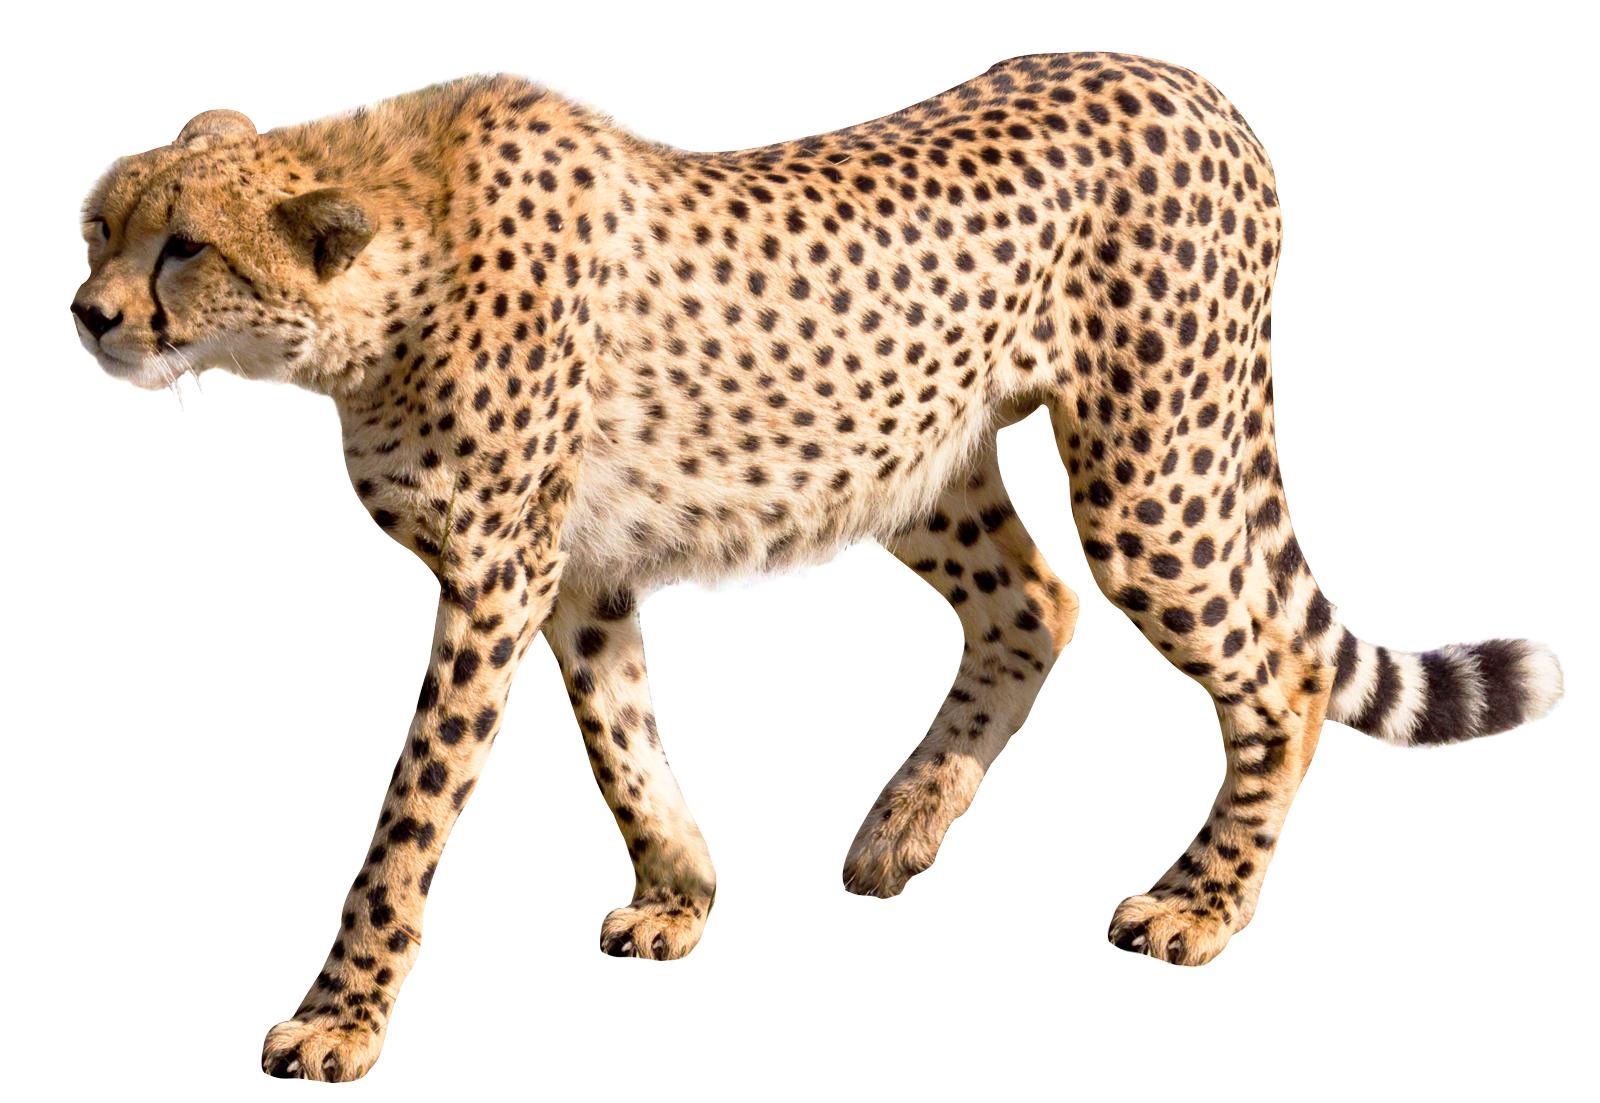 Images pngpix transparent image. Cheetah tag png clipart freeuse library